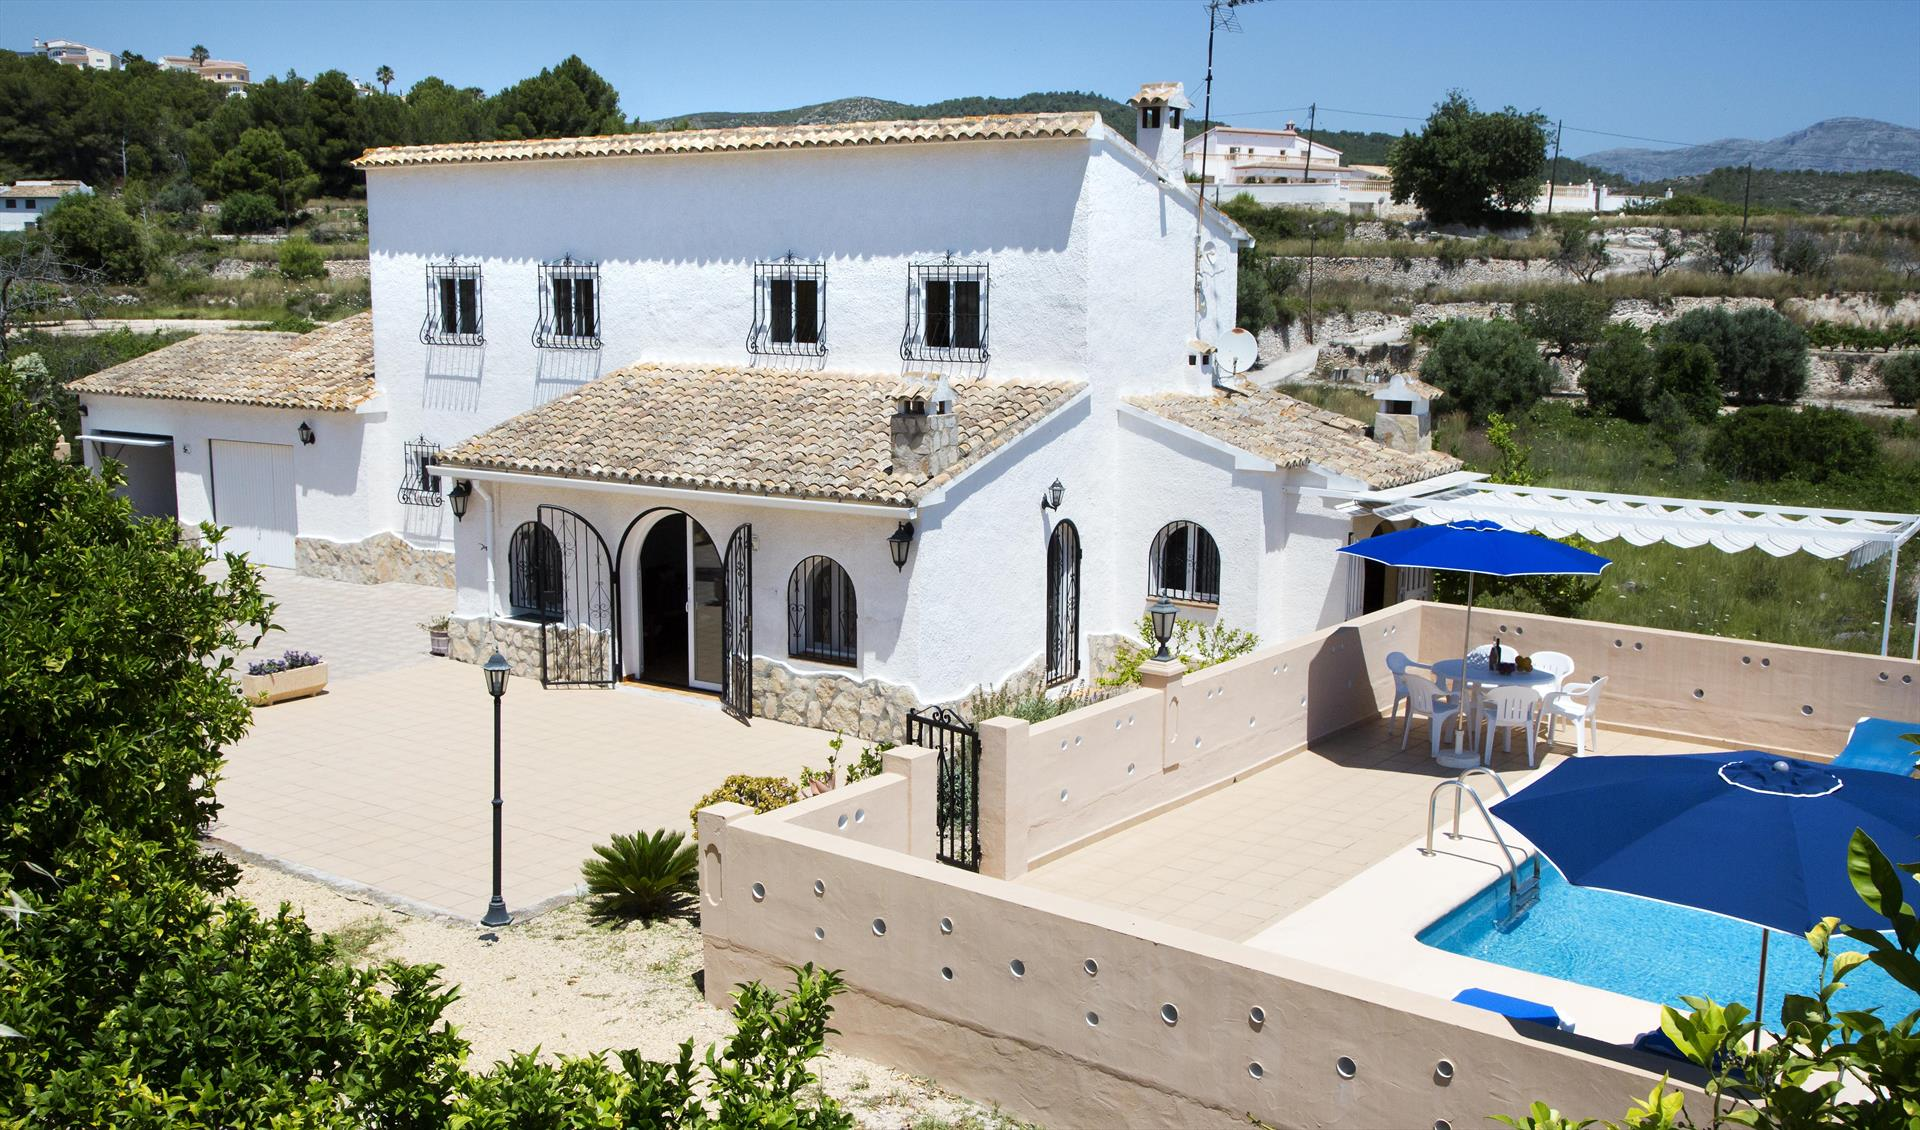 Abiareta, Rustic and cheerful holiday home in Javea, on the Costa Blanca, Spain  with private pool for 6 persons.....